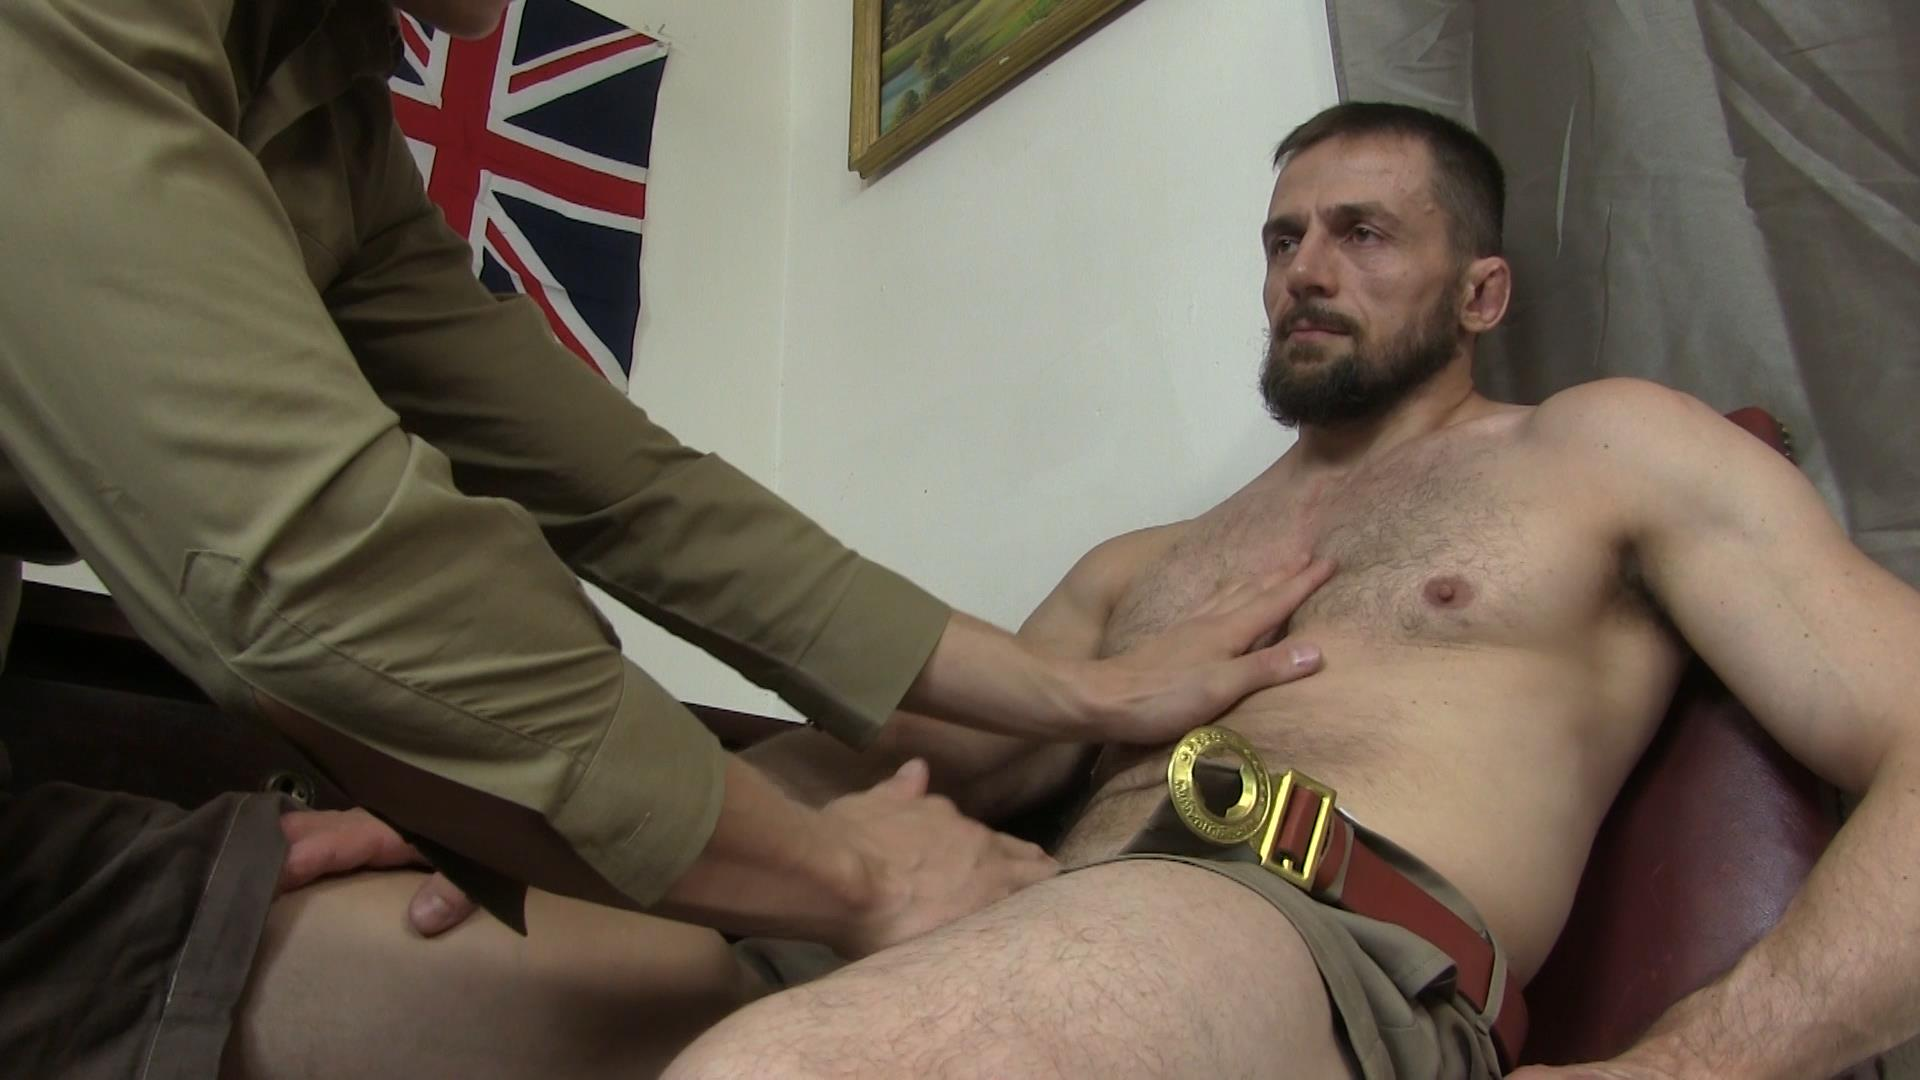 Blueberry reccomend Full length twink sex clips